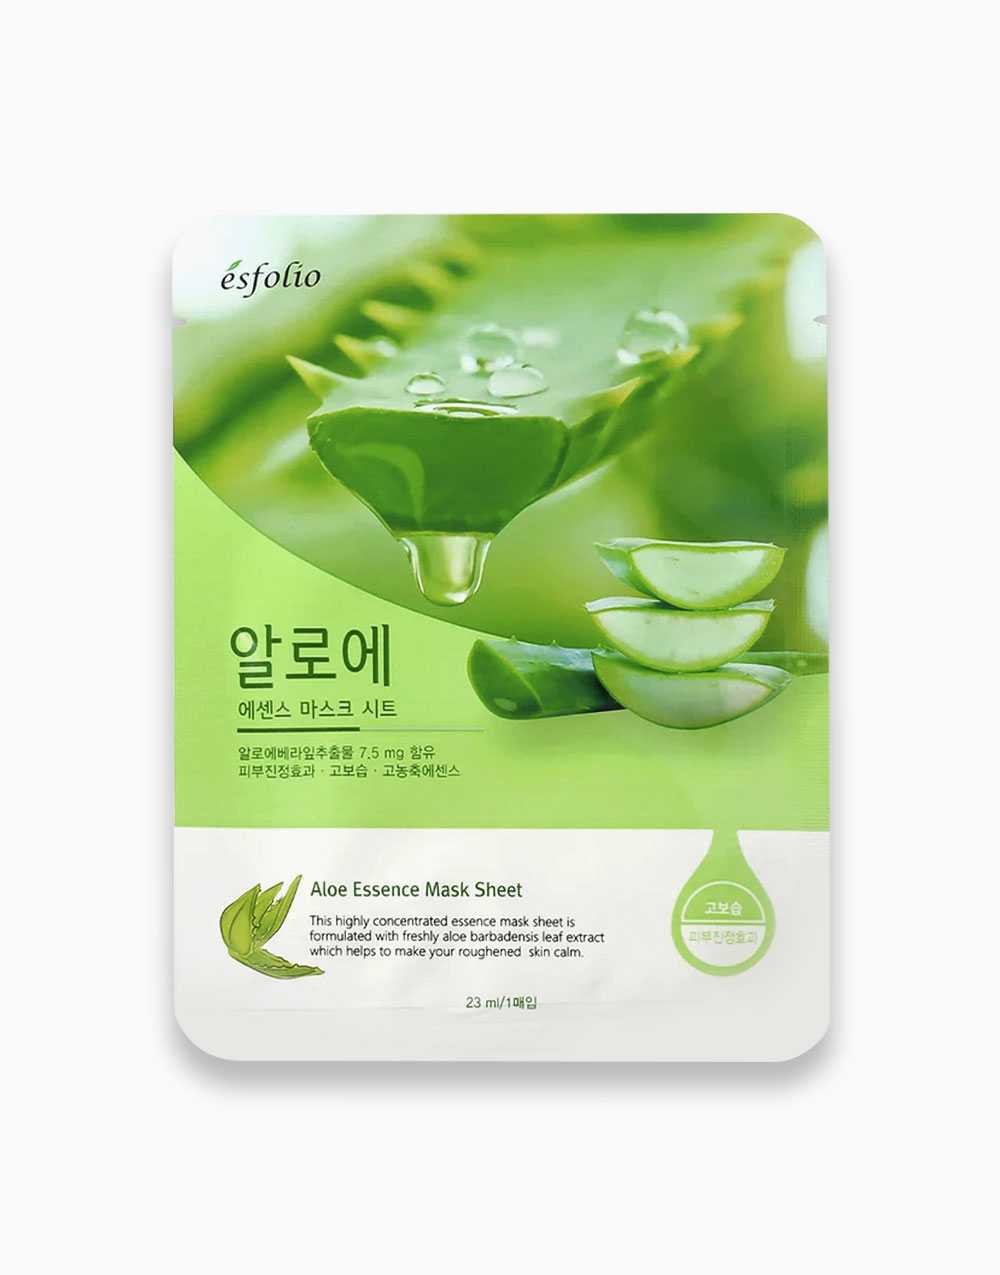 Aloe Essence Mask Sheet by Esfolio